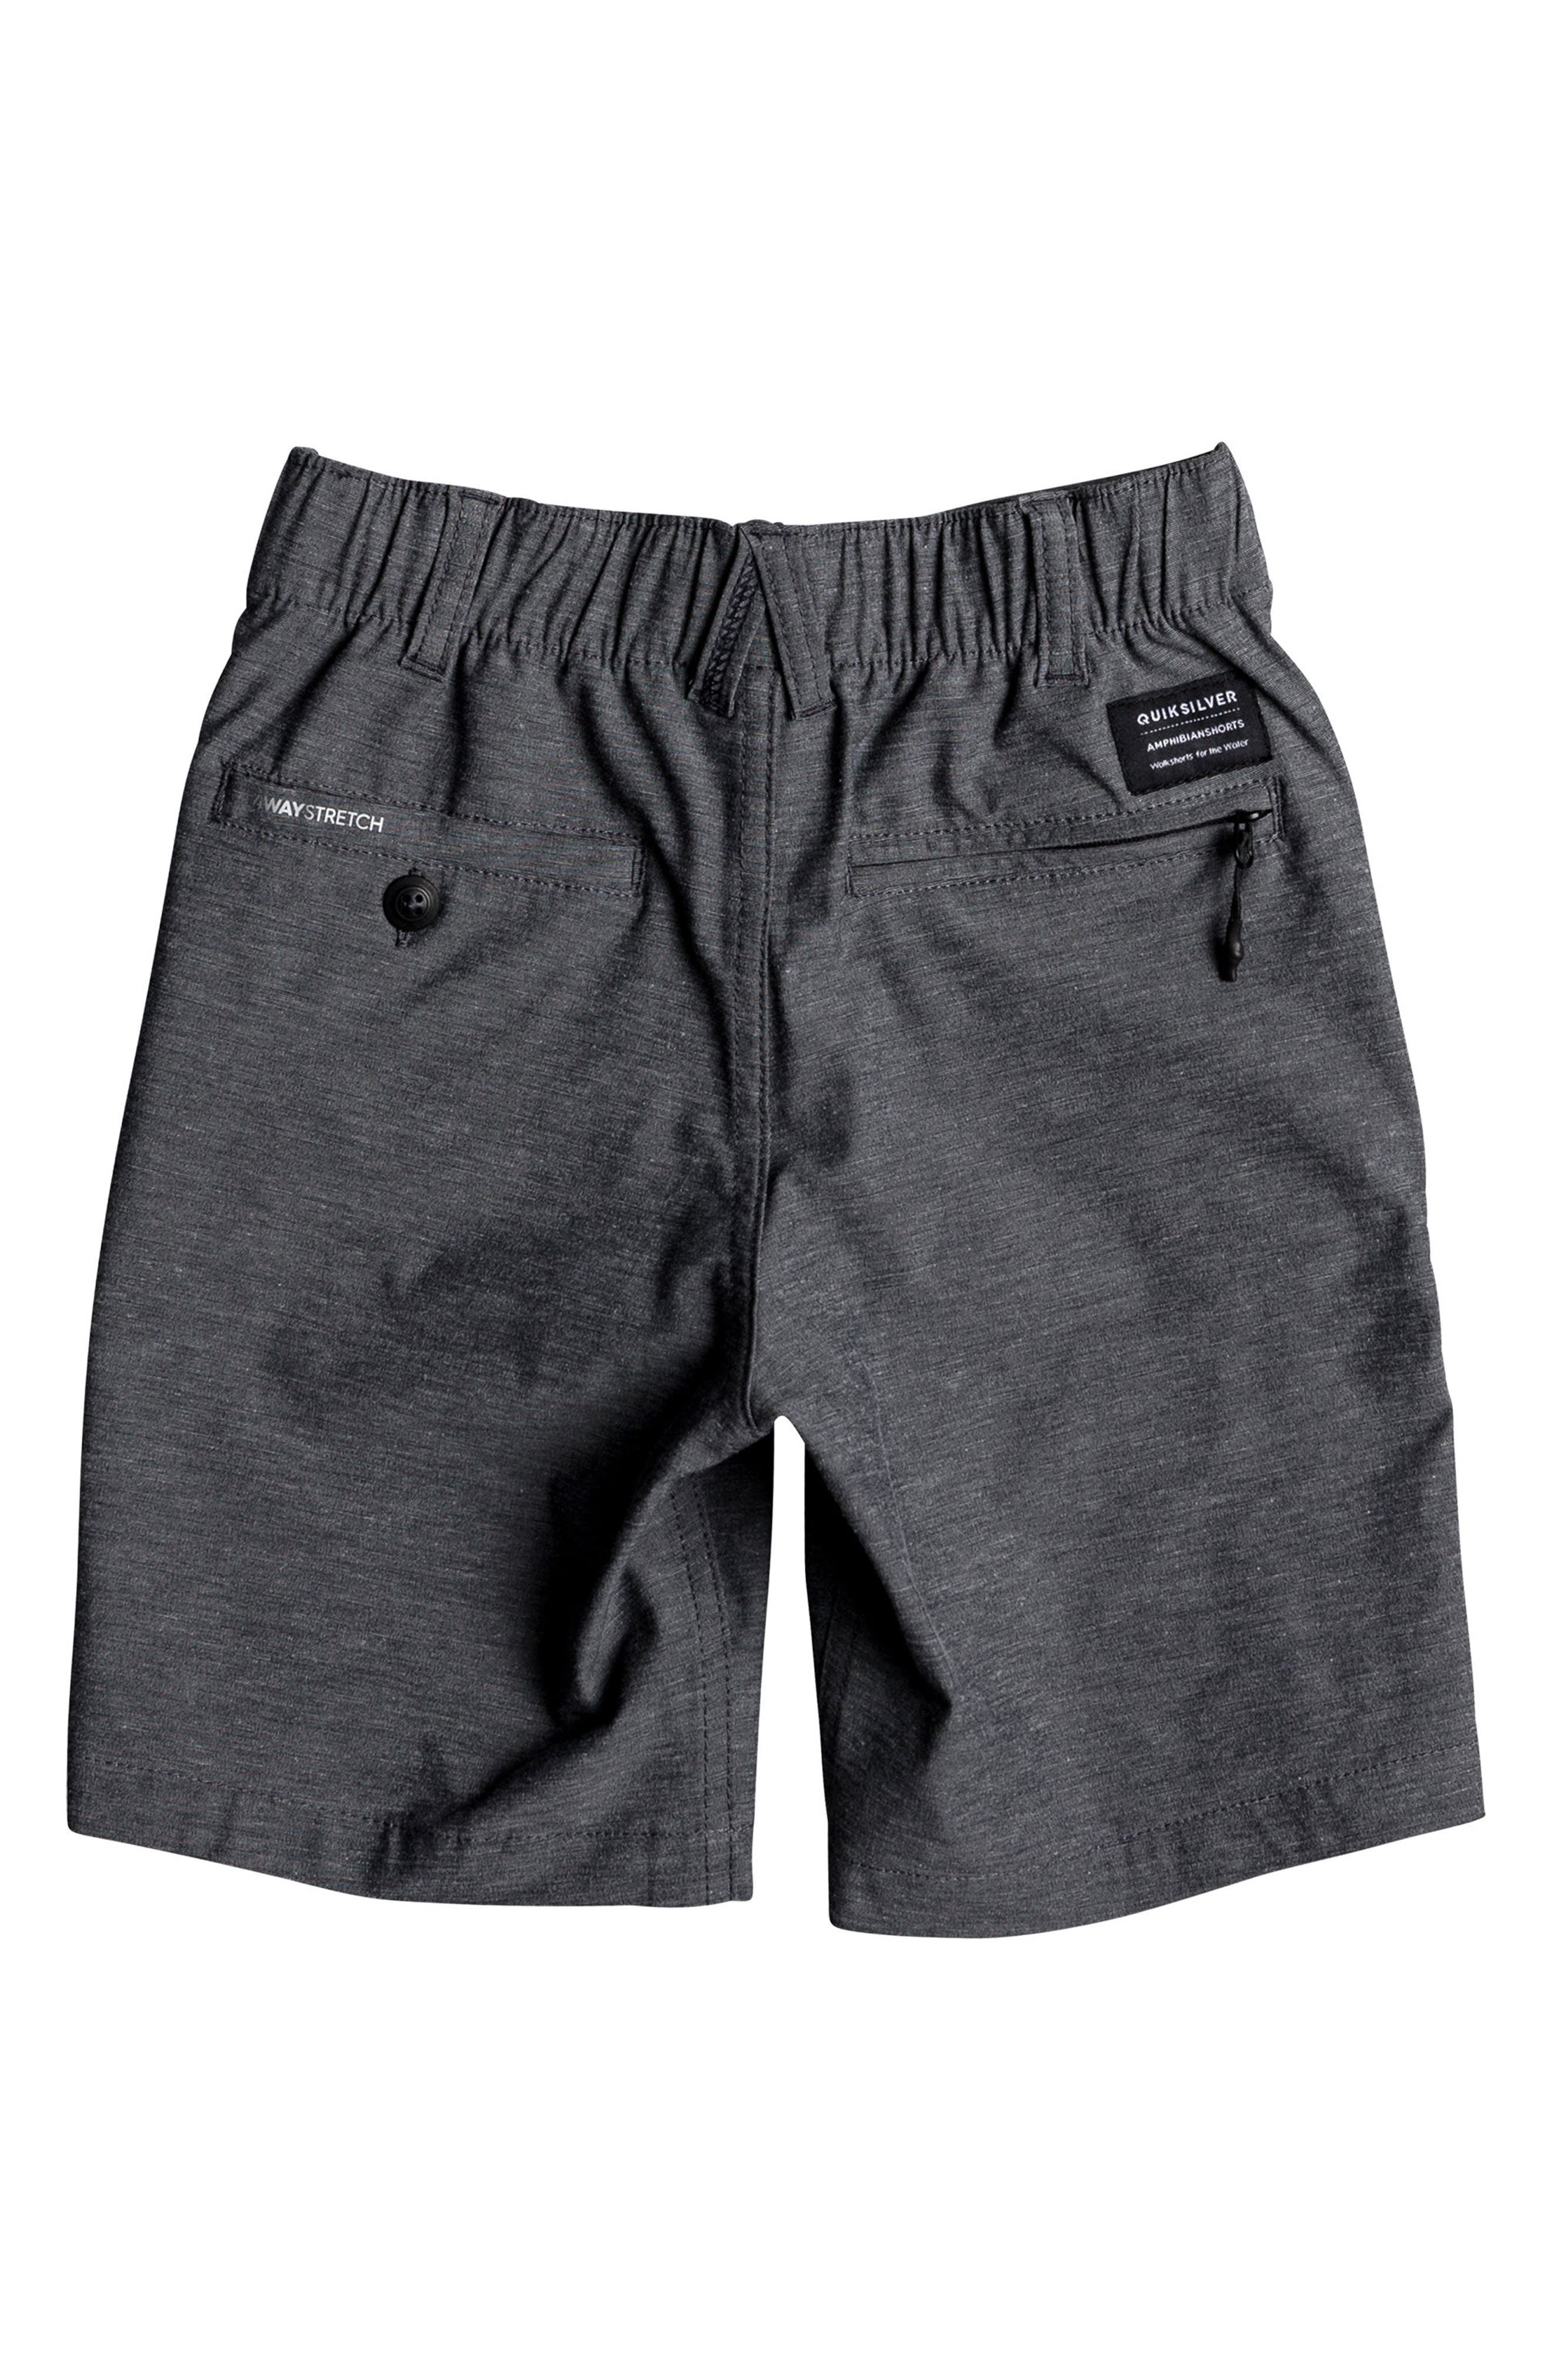 Alternate Image 2  - Quiksilver Union Heather Amphibian Board Shorts (Toddler Boys & Little Boys)